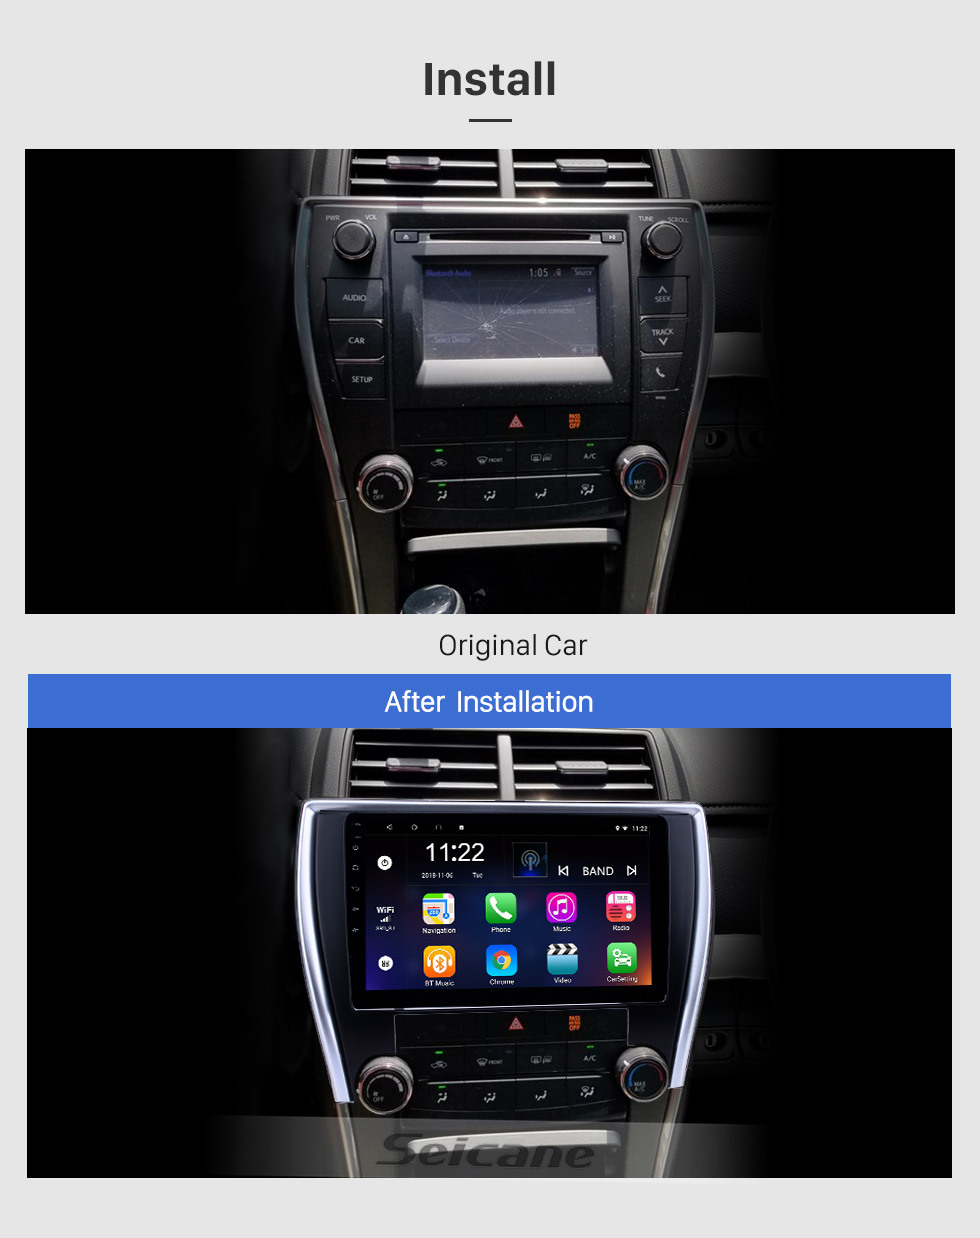 Seicane 10.1 inch Android 10.0 GPS Navigation Radio for 2015 Toyota Camry(America version) Bluetooth HD Touchscreen Carplay support Backup camera